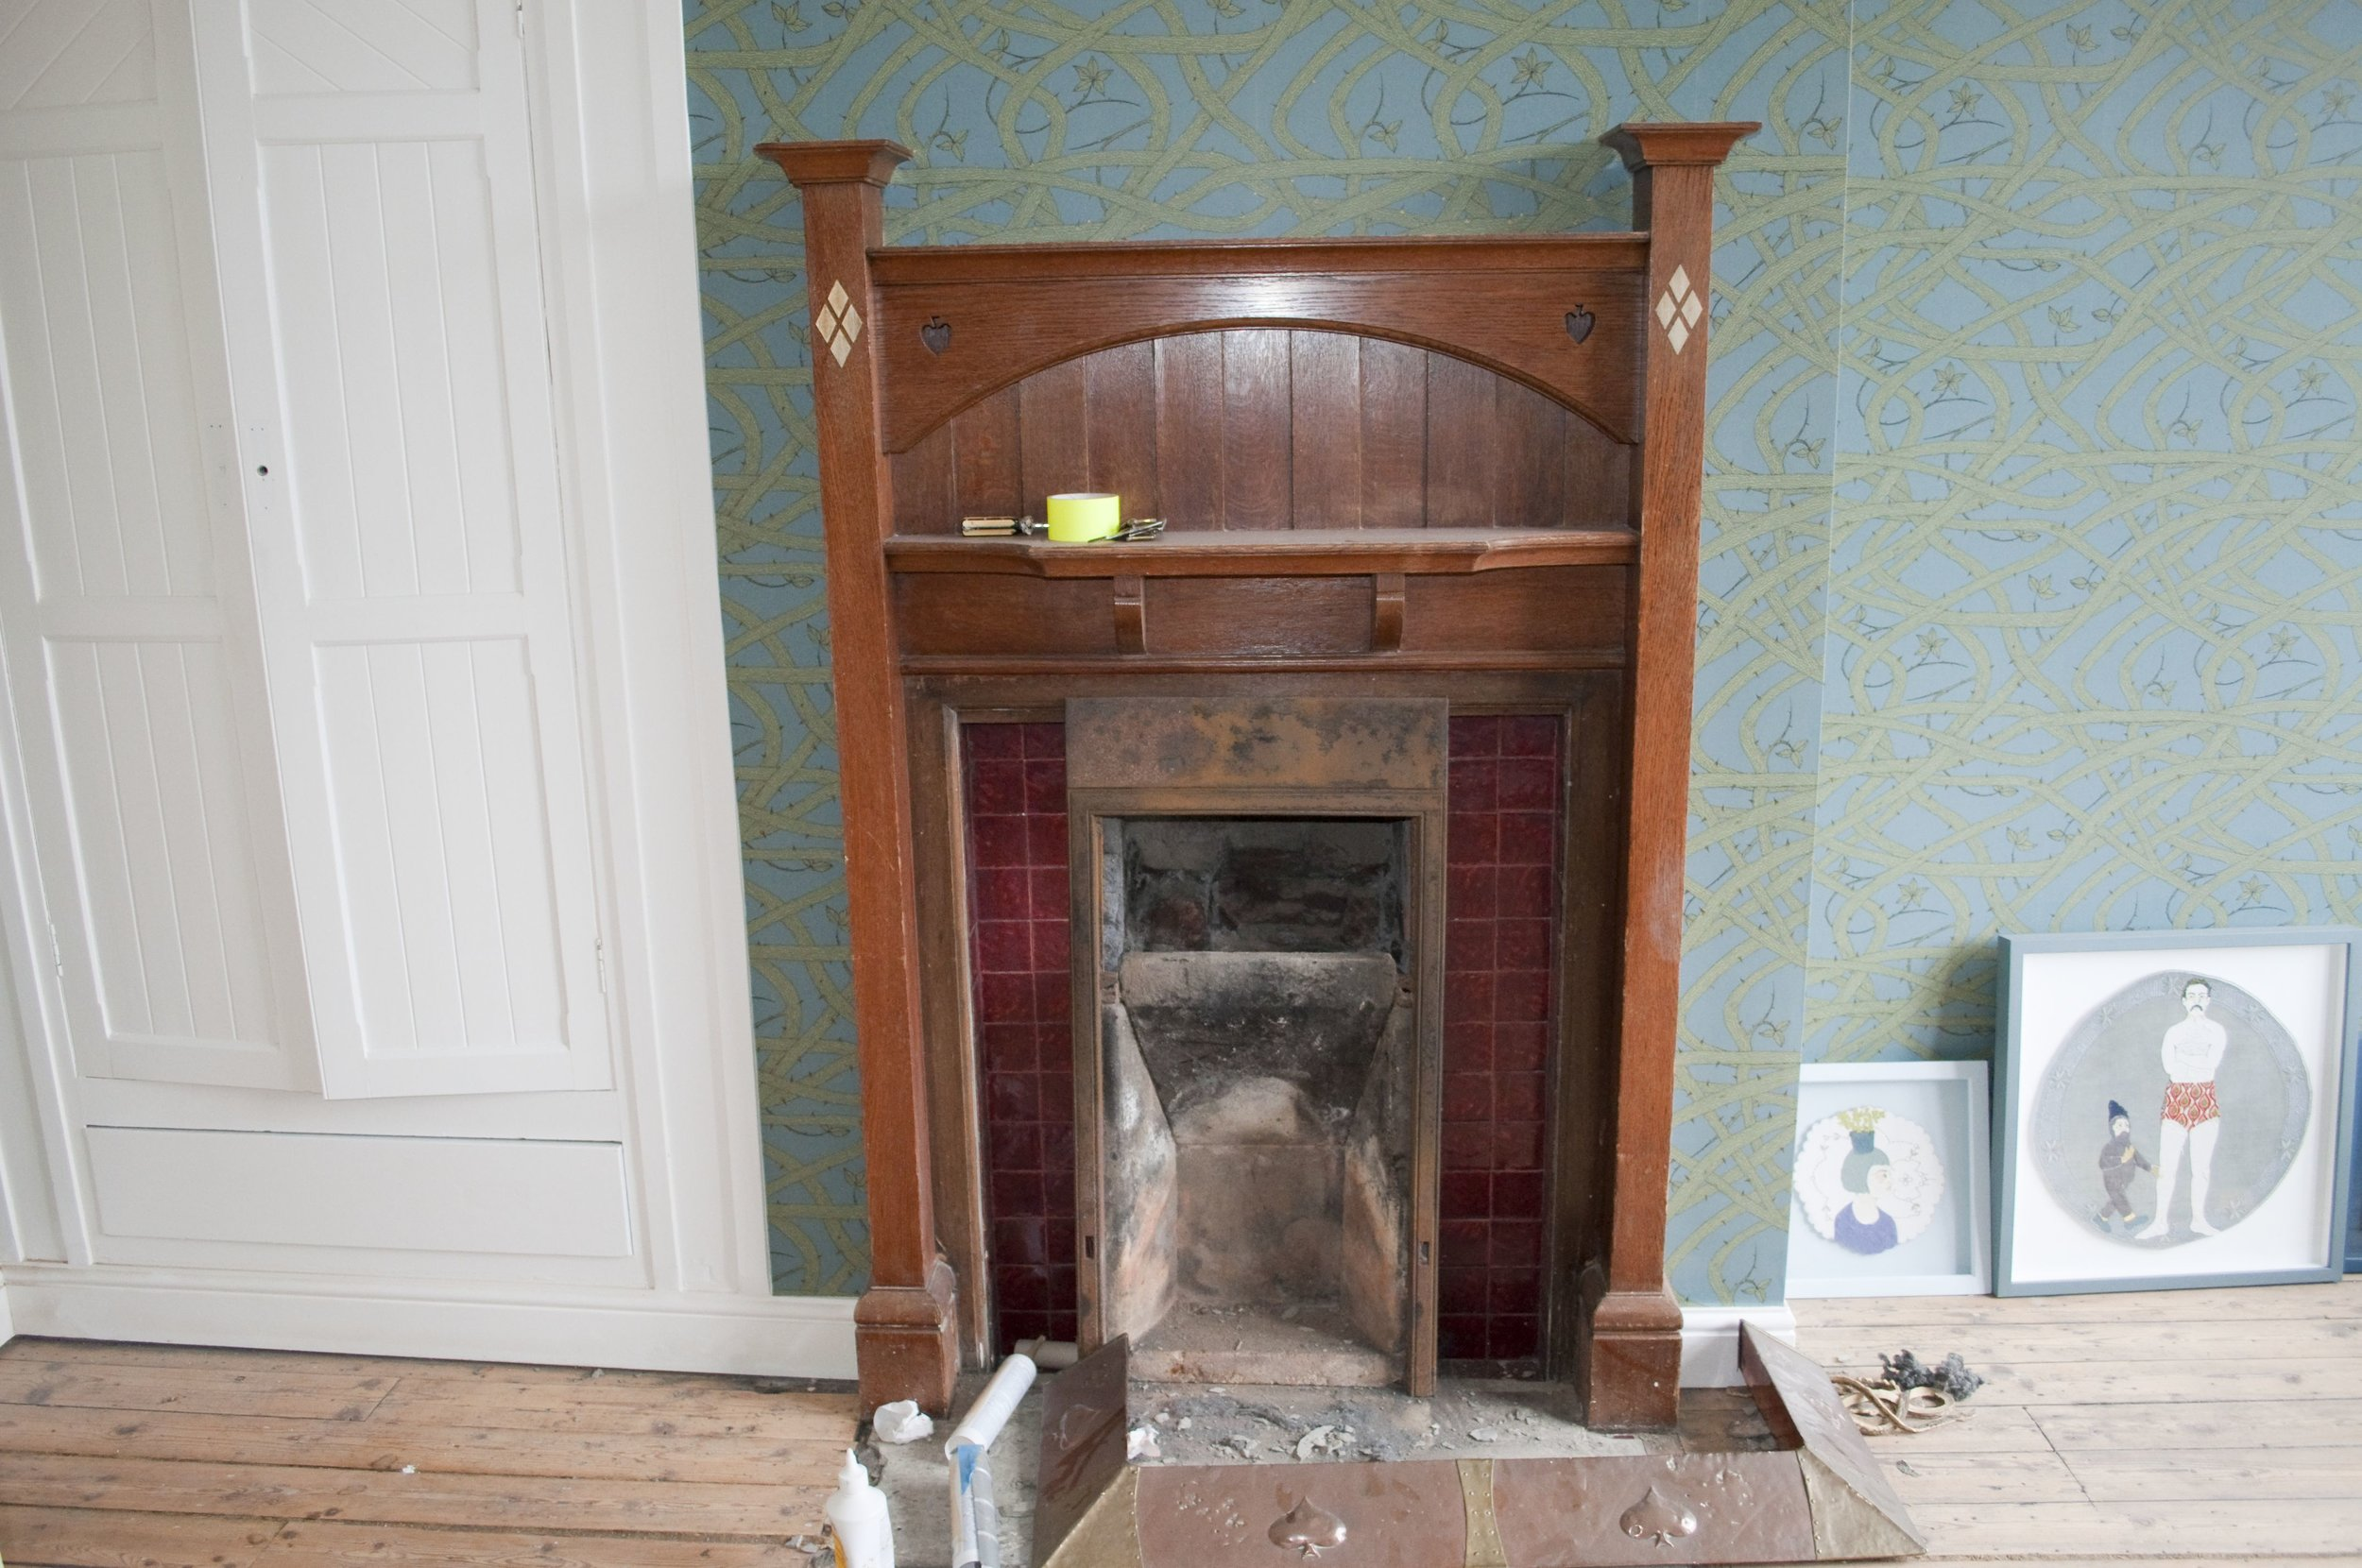 Bedroom fireplace waiting for its new insert